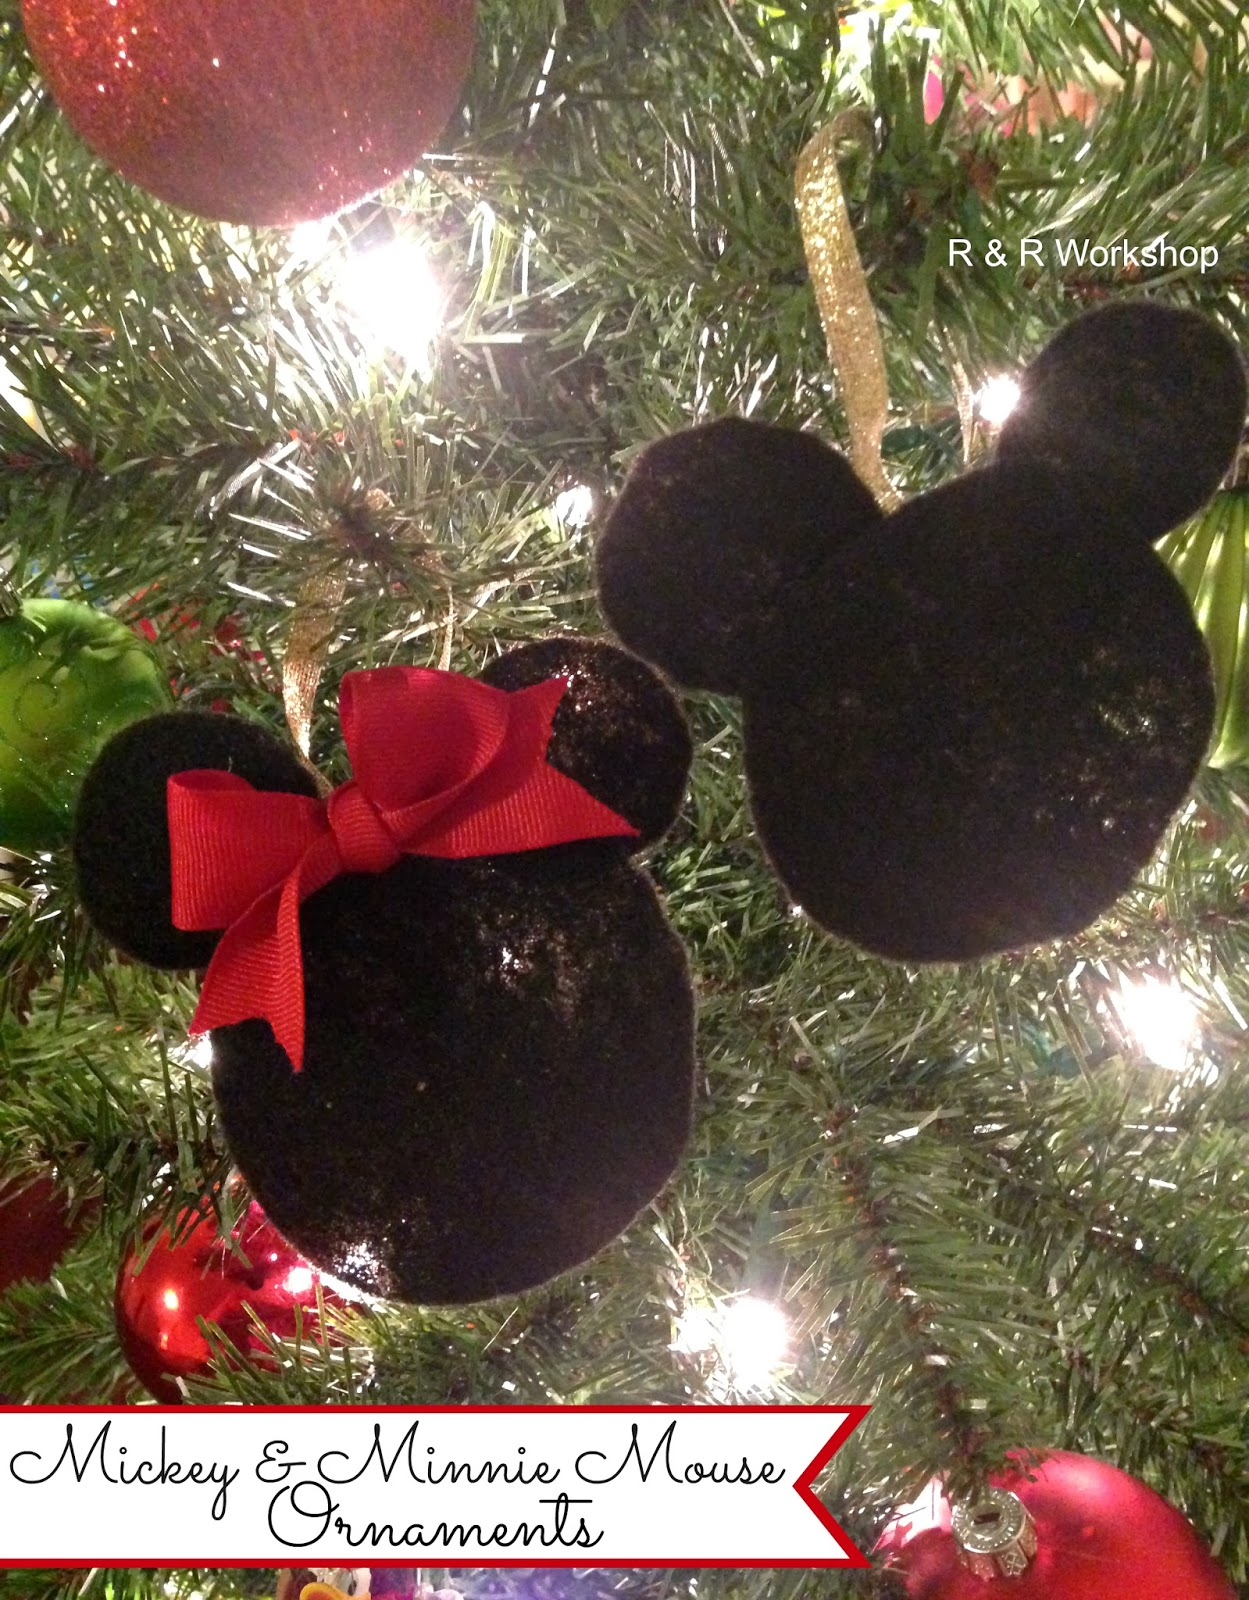 Mickey And Minnie Mouse Christmas Tree Decorations.Mickey And Minnie Mouse Ornaments R R Workshop Lines